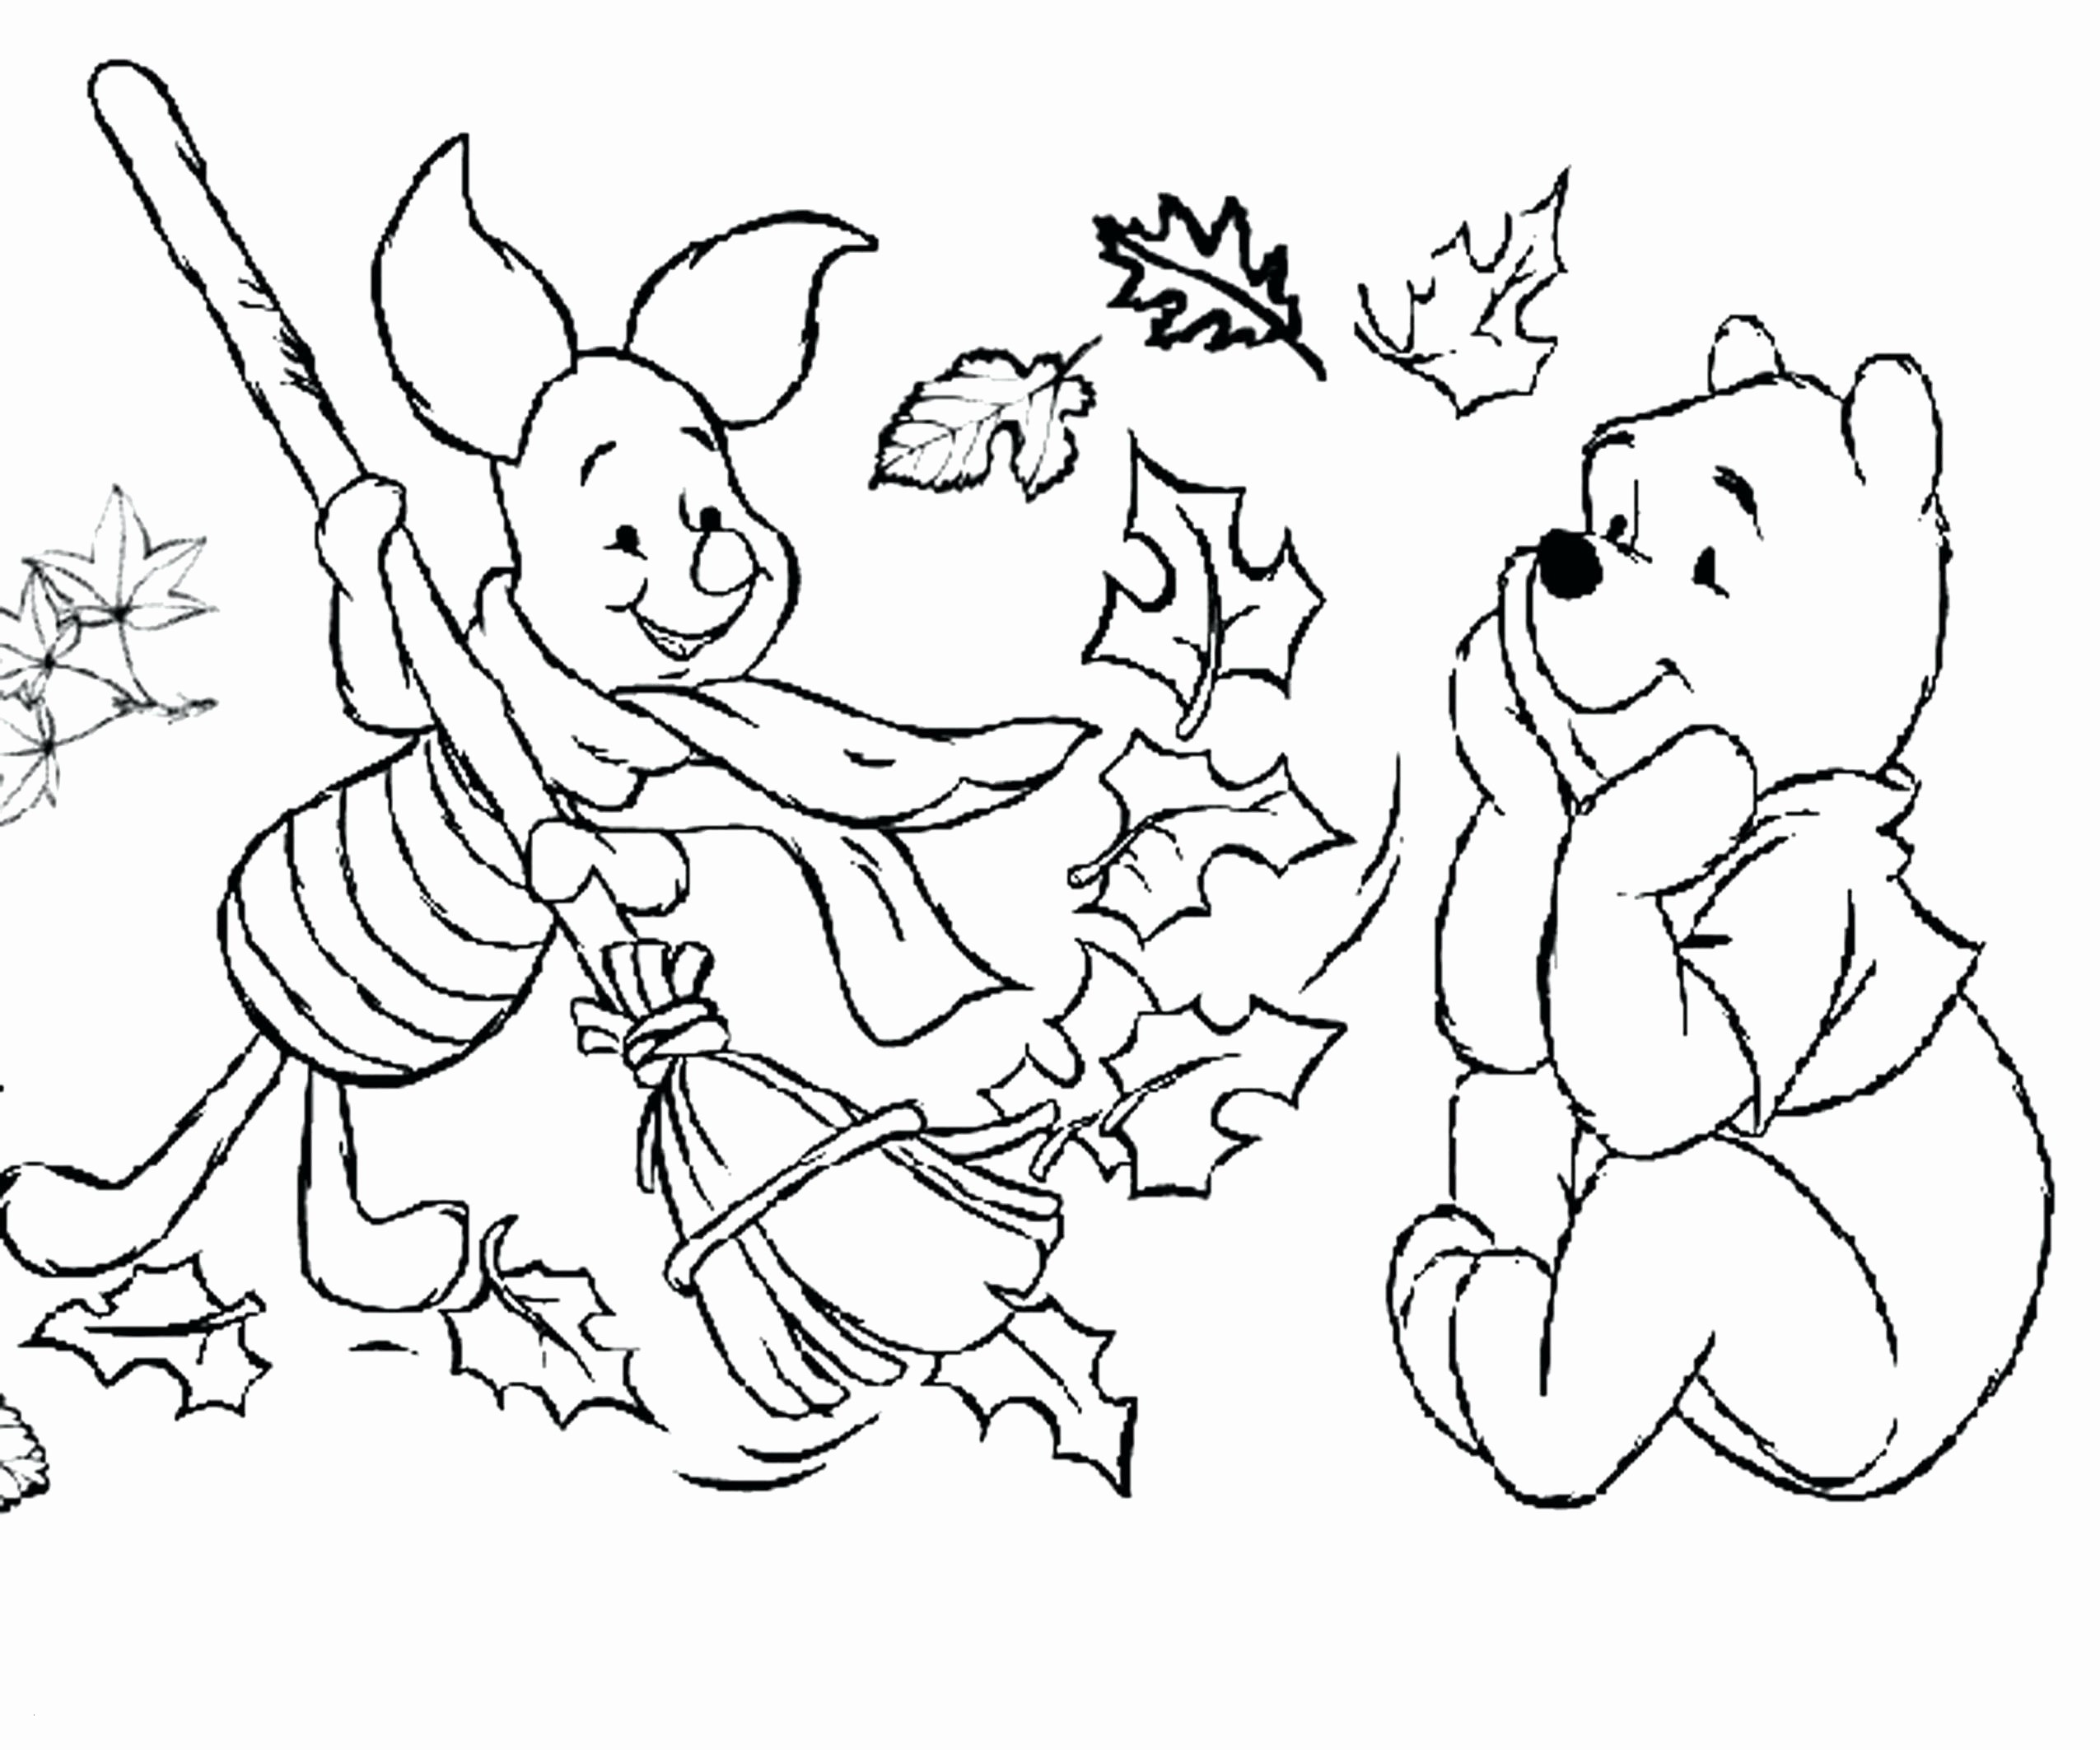 Monkey Coloring Pages for Preschoolers - Beans Coloring Pages Monkey Coloring Pages for Preschoolers Awesome